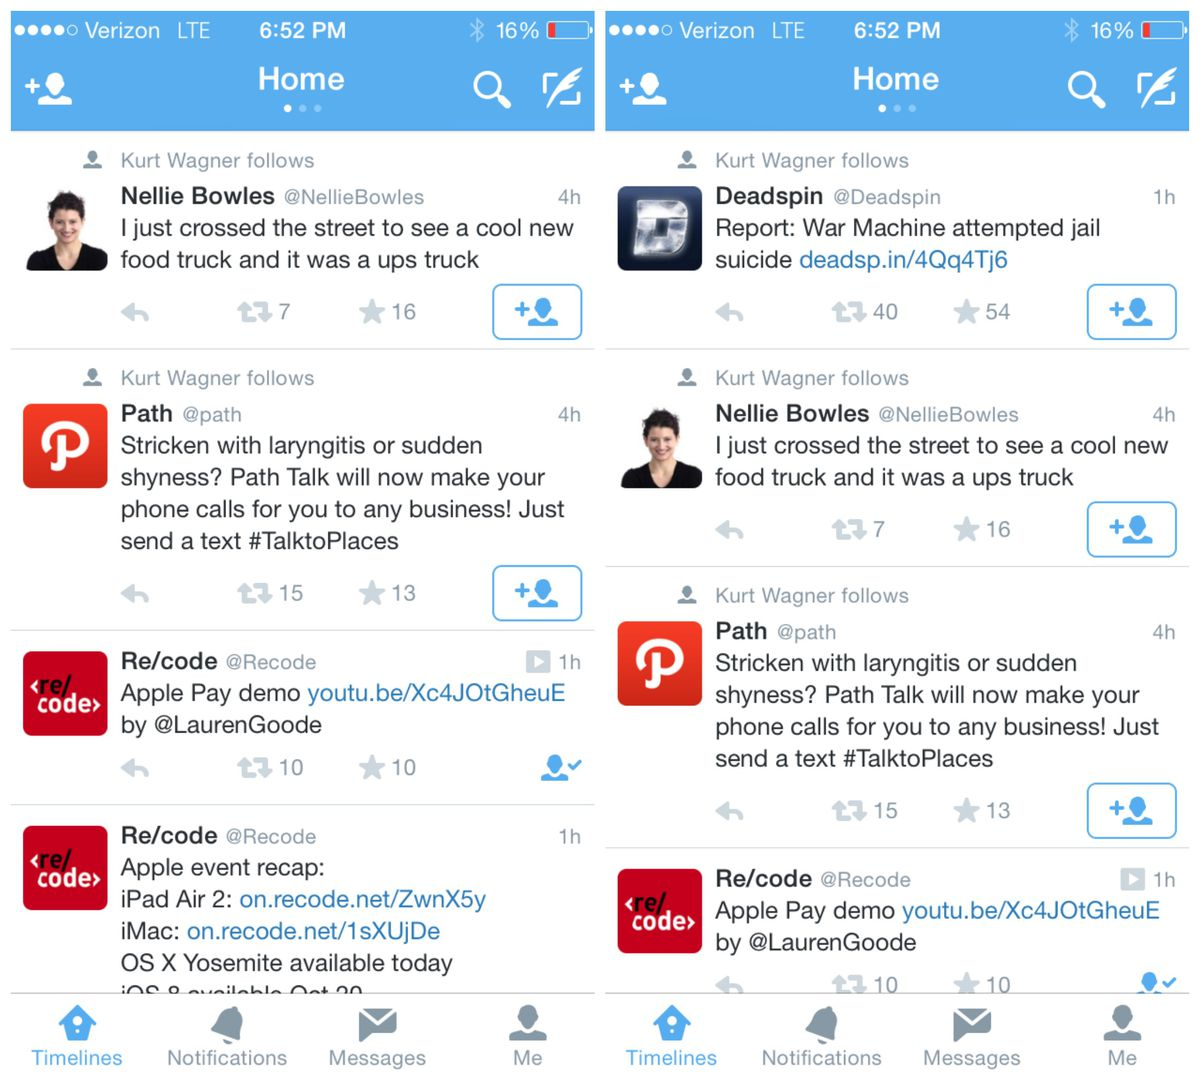 If a new user refreshes his feed with no new tweets available, Twitter will now recommend tweets for him.